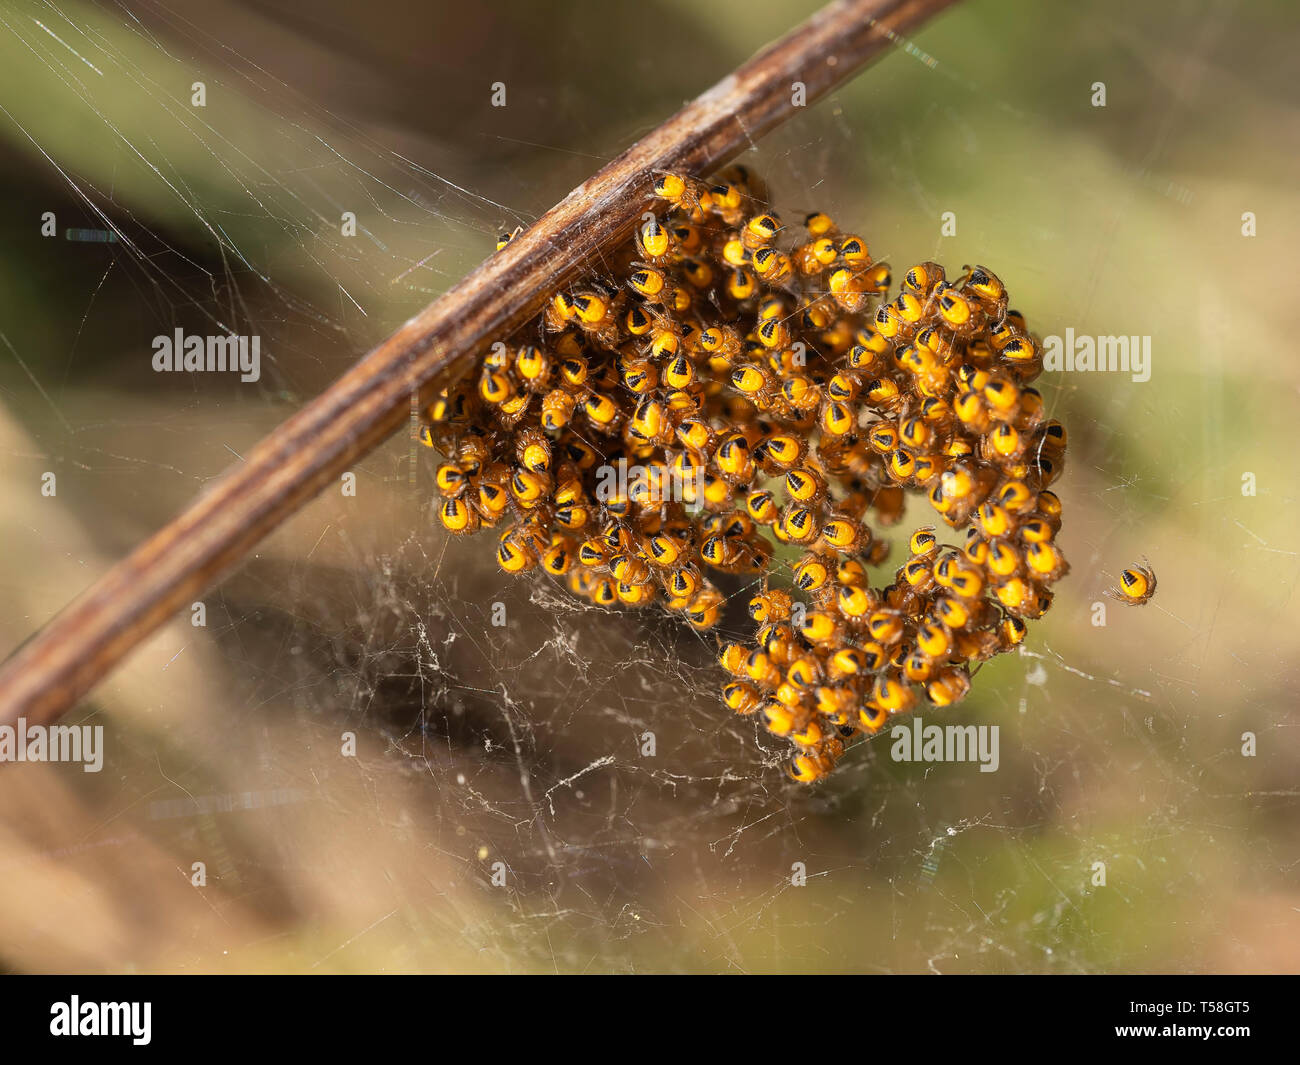 Baby orb weaver spiders, spiderlings, in nest, Yellow and black, macro. - Stock Image